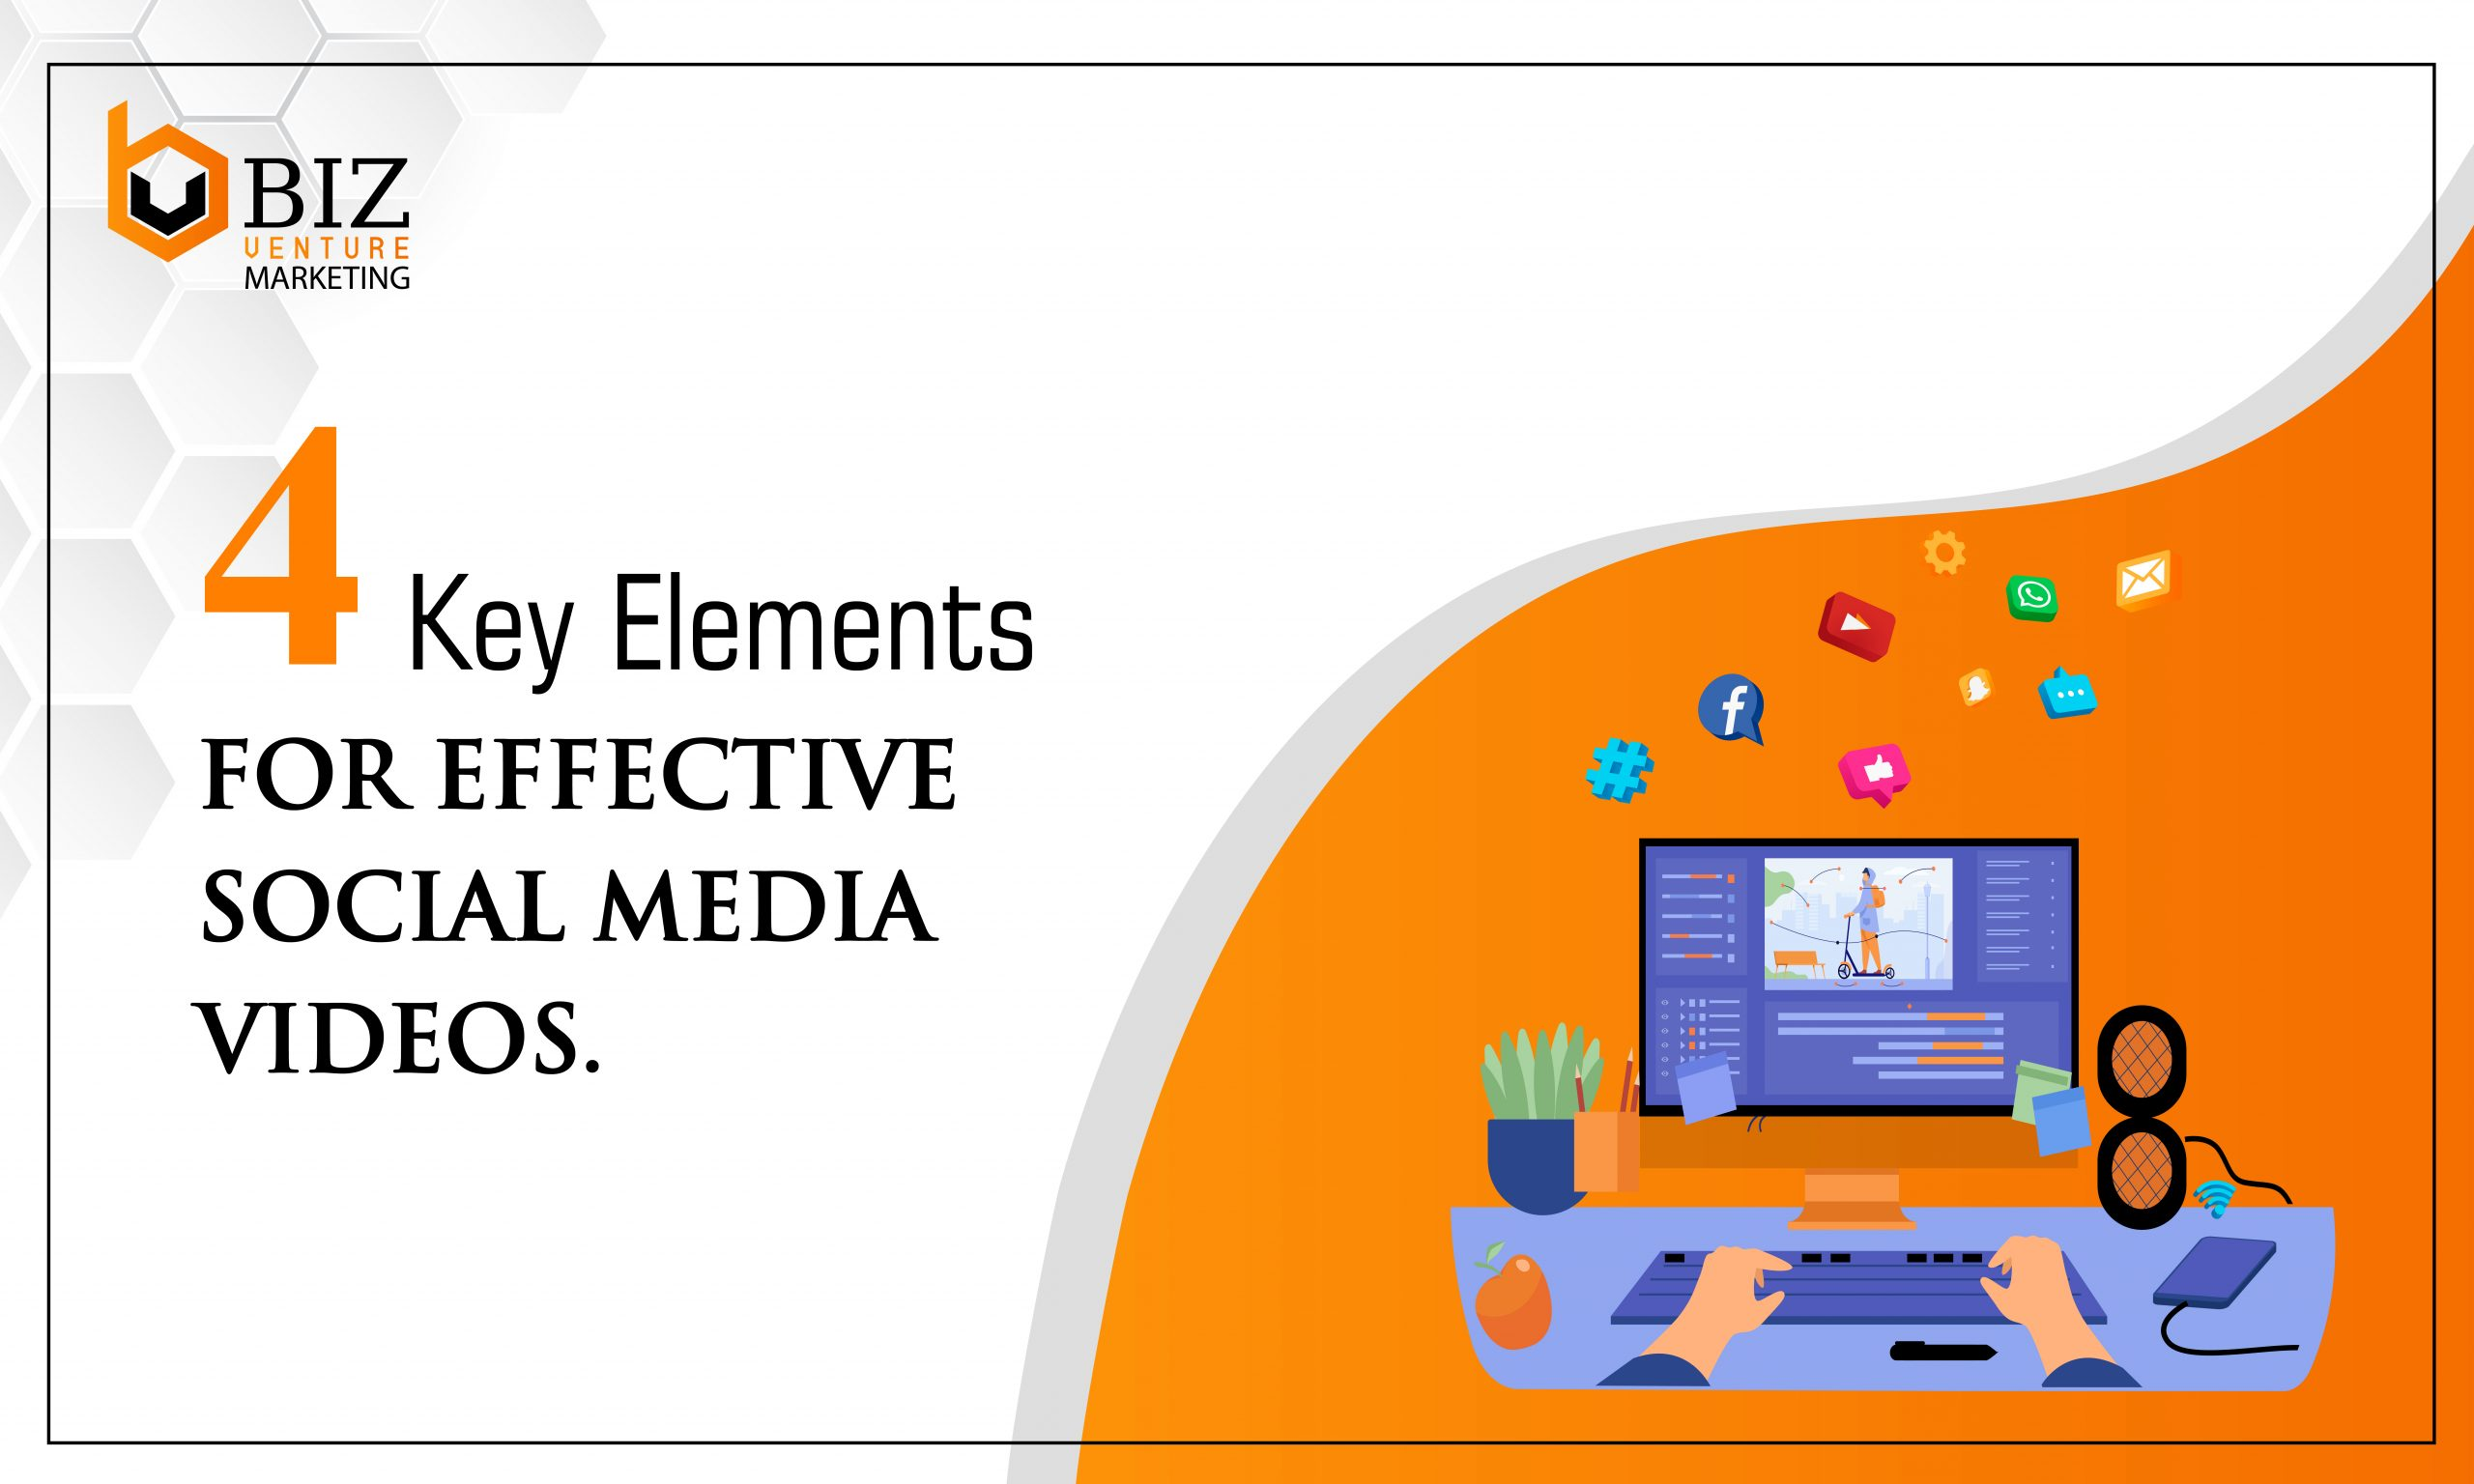 Key Elements for Effective Social Media Videos